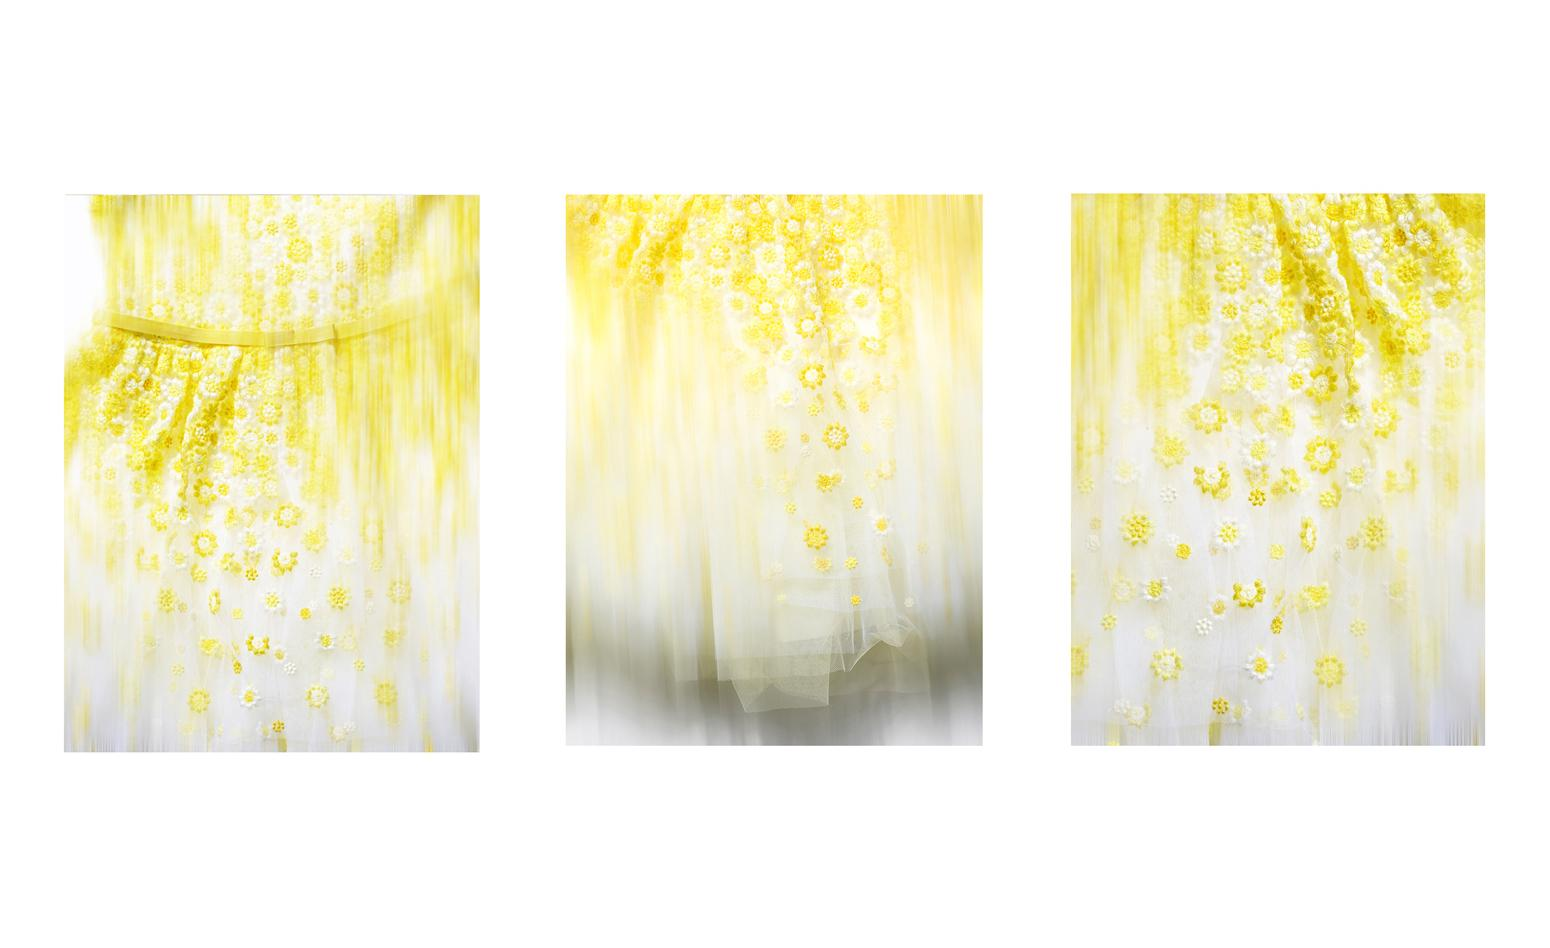 TULLE Triptych (framed) - abstract photographs of mesmerizing texture details